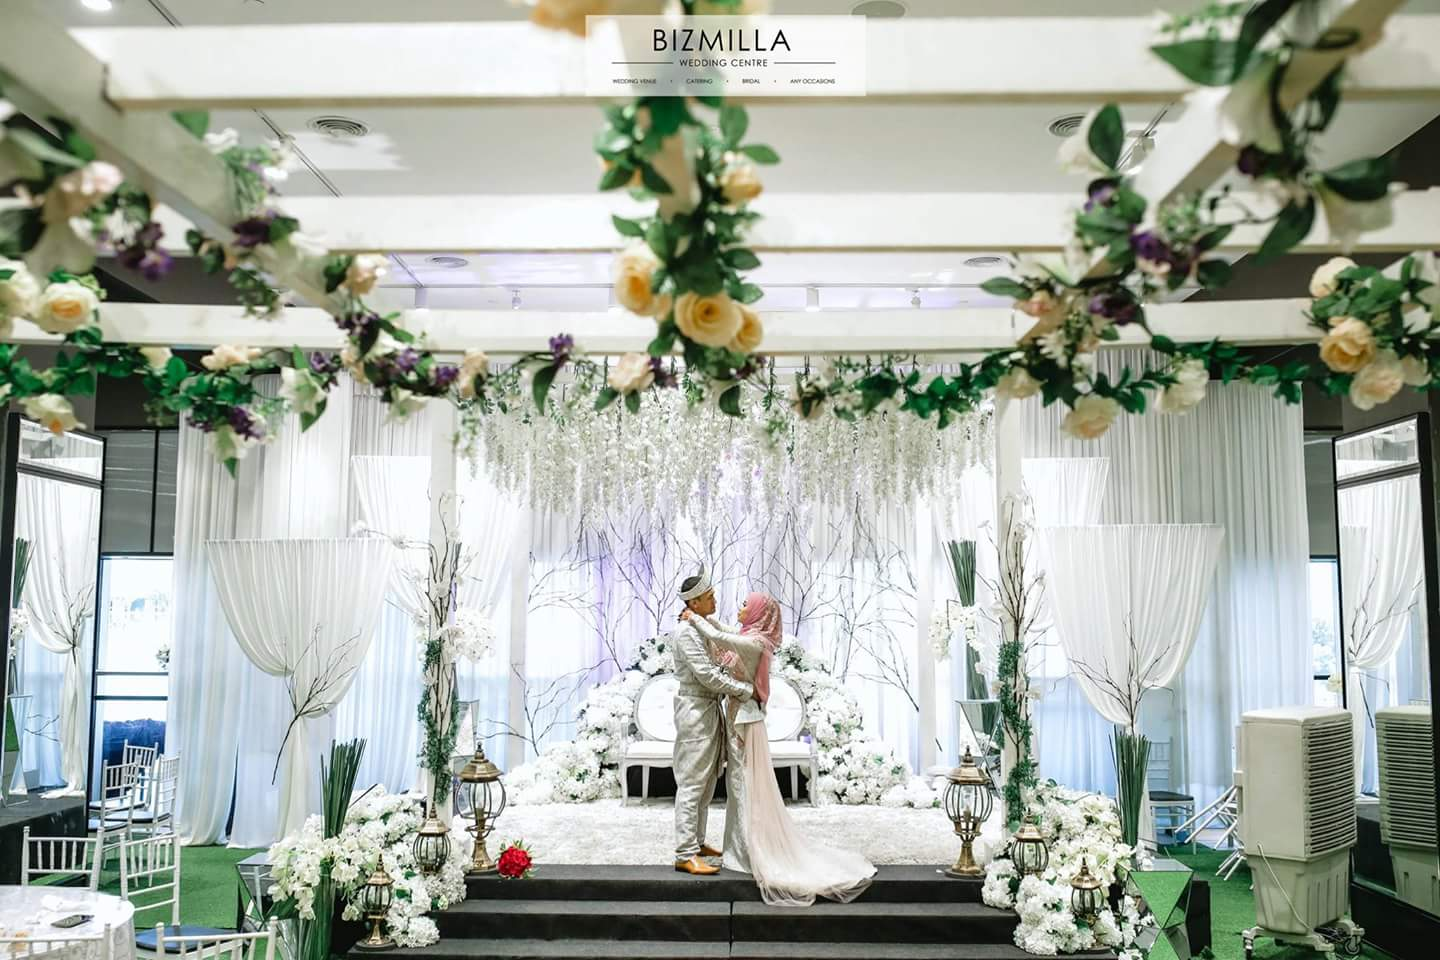 Halls with Different Themes @ Bizmilla Wedding Centre